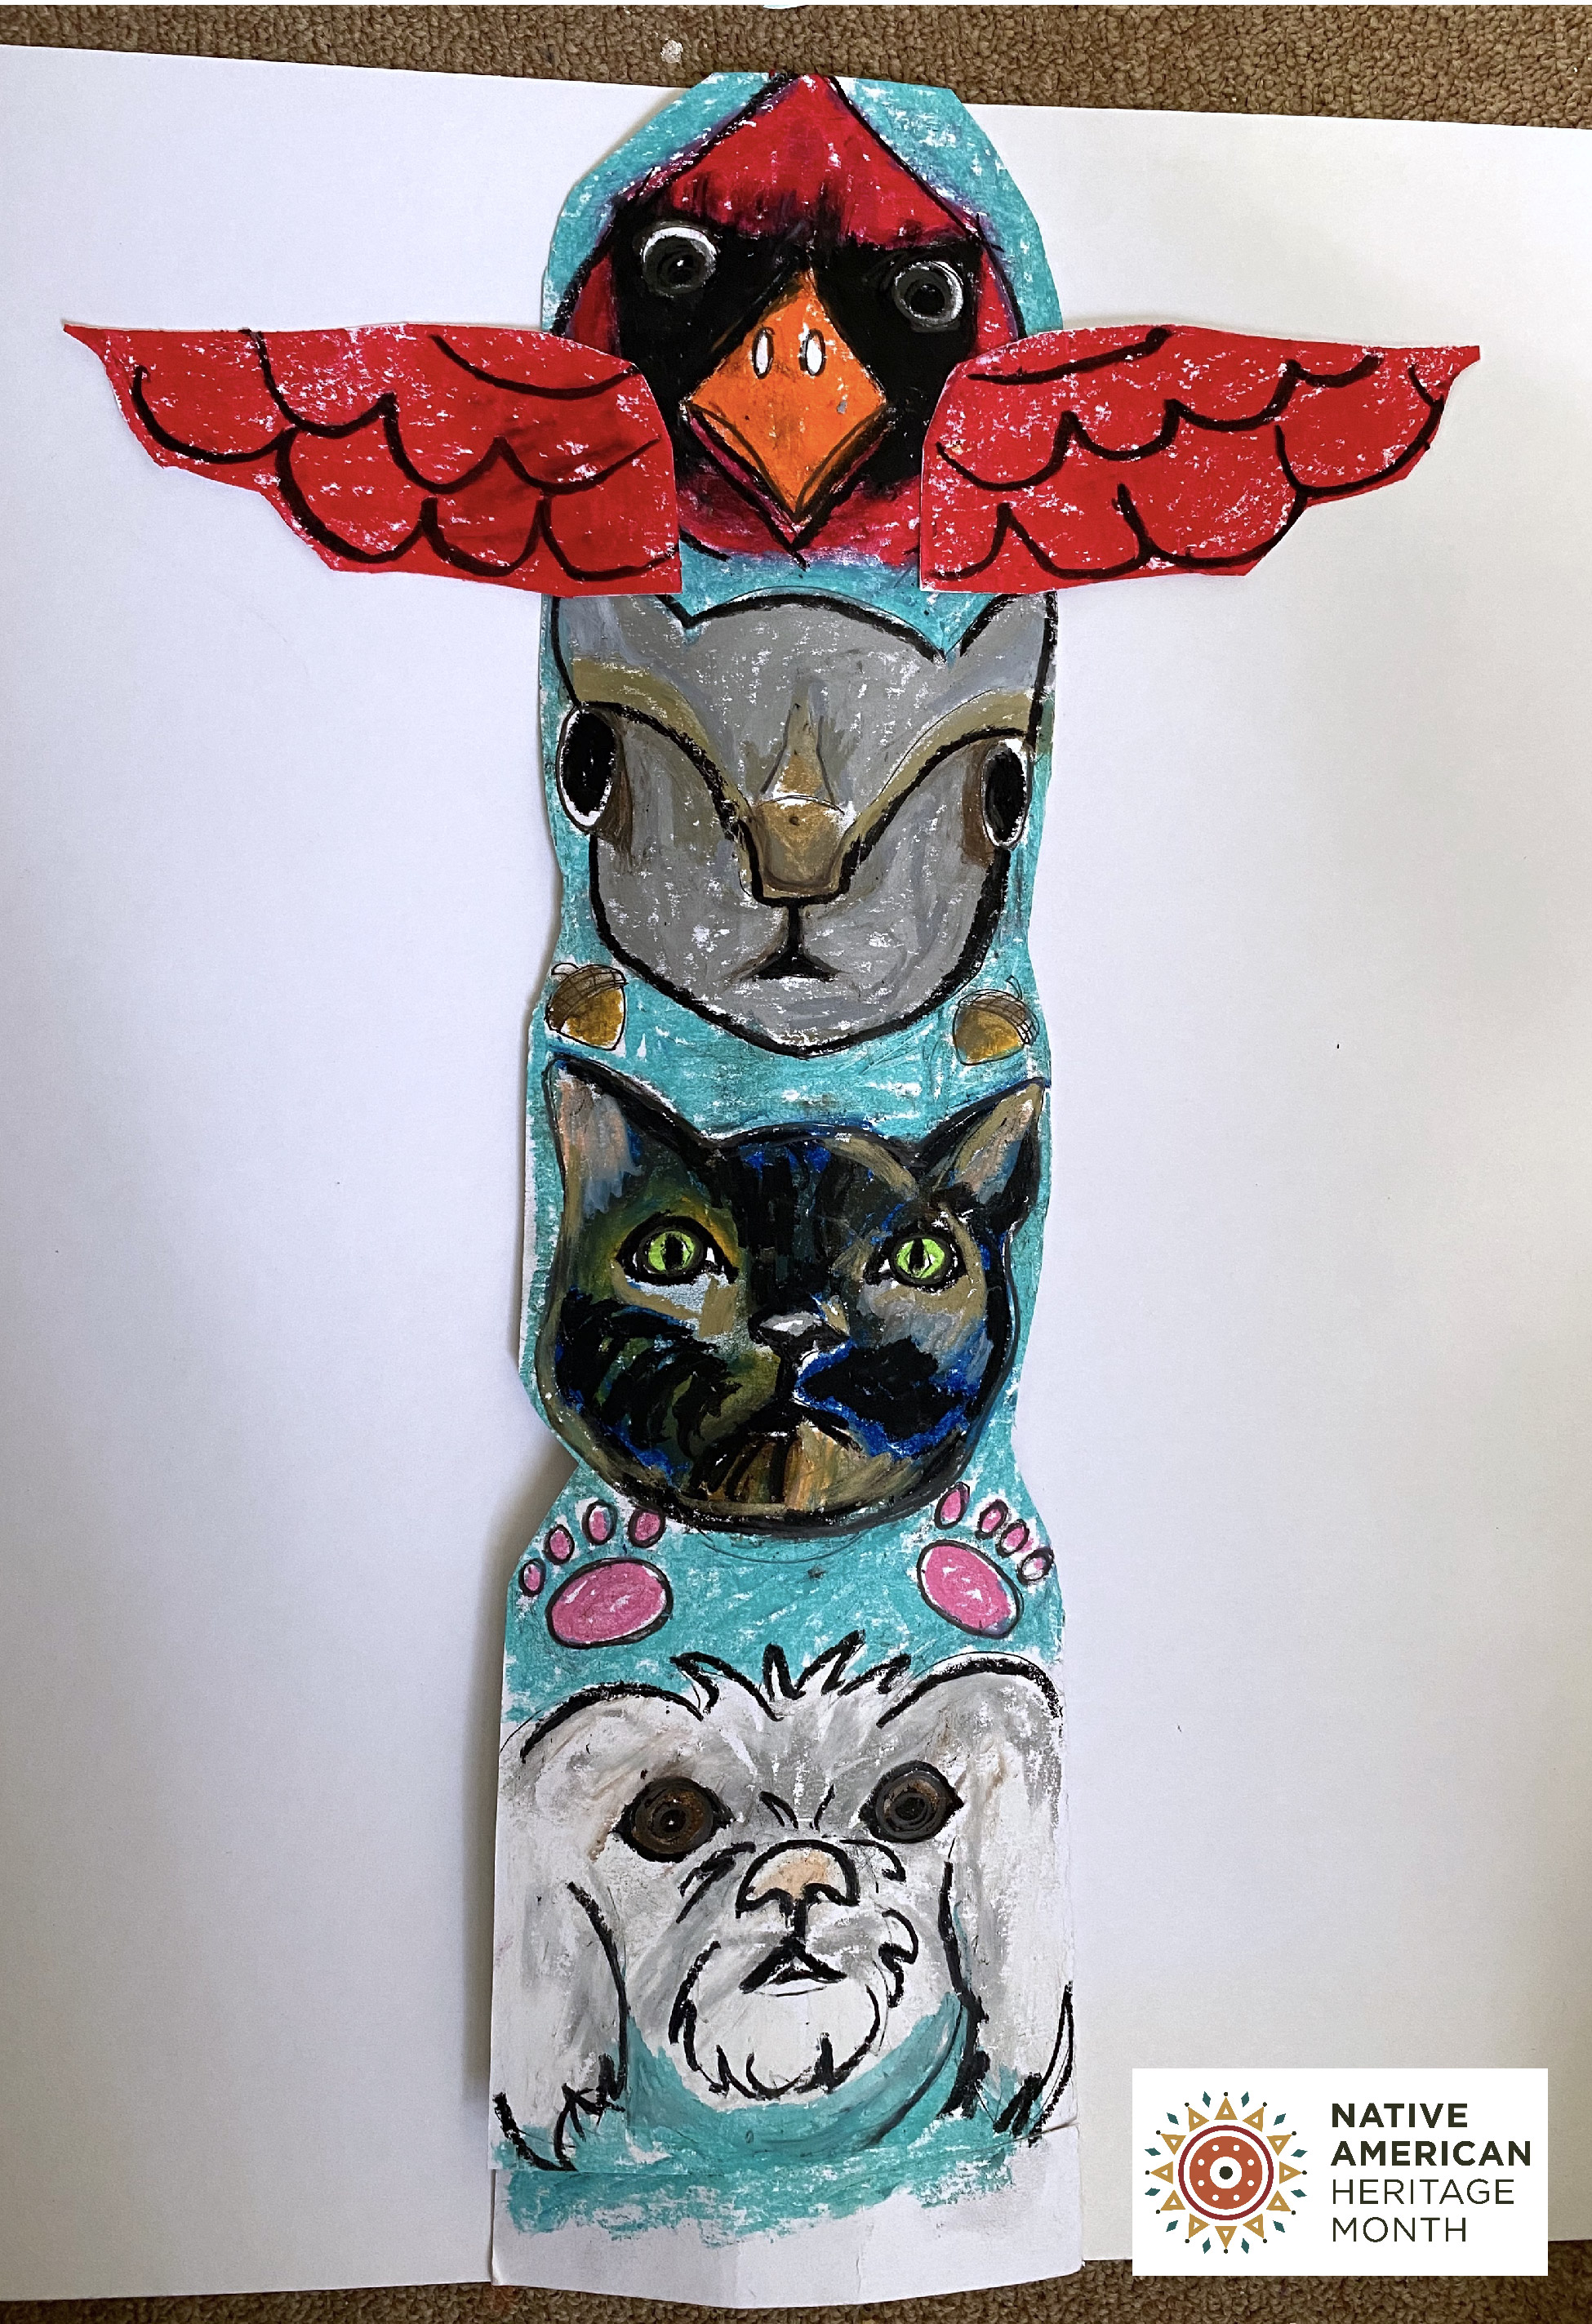 Totem pole project featuring a cardinal, rabbit, cat and dog from top to bottom. Bottom right corner has NAtive American HEritage month logo.